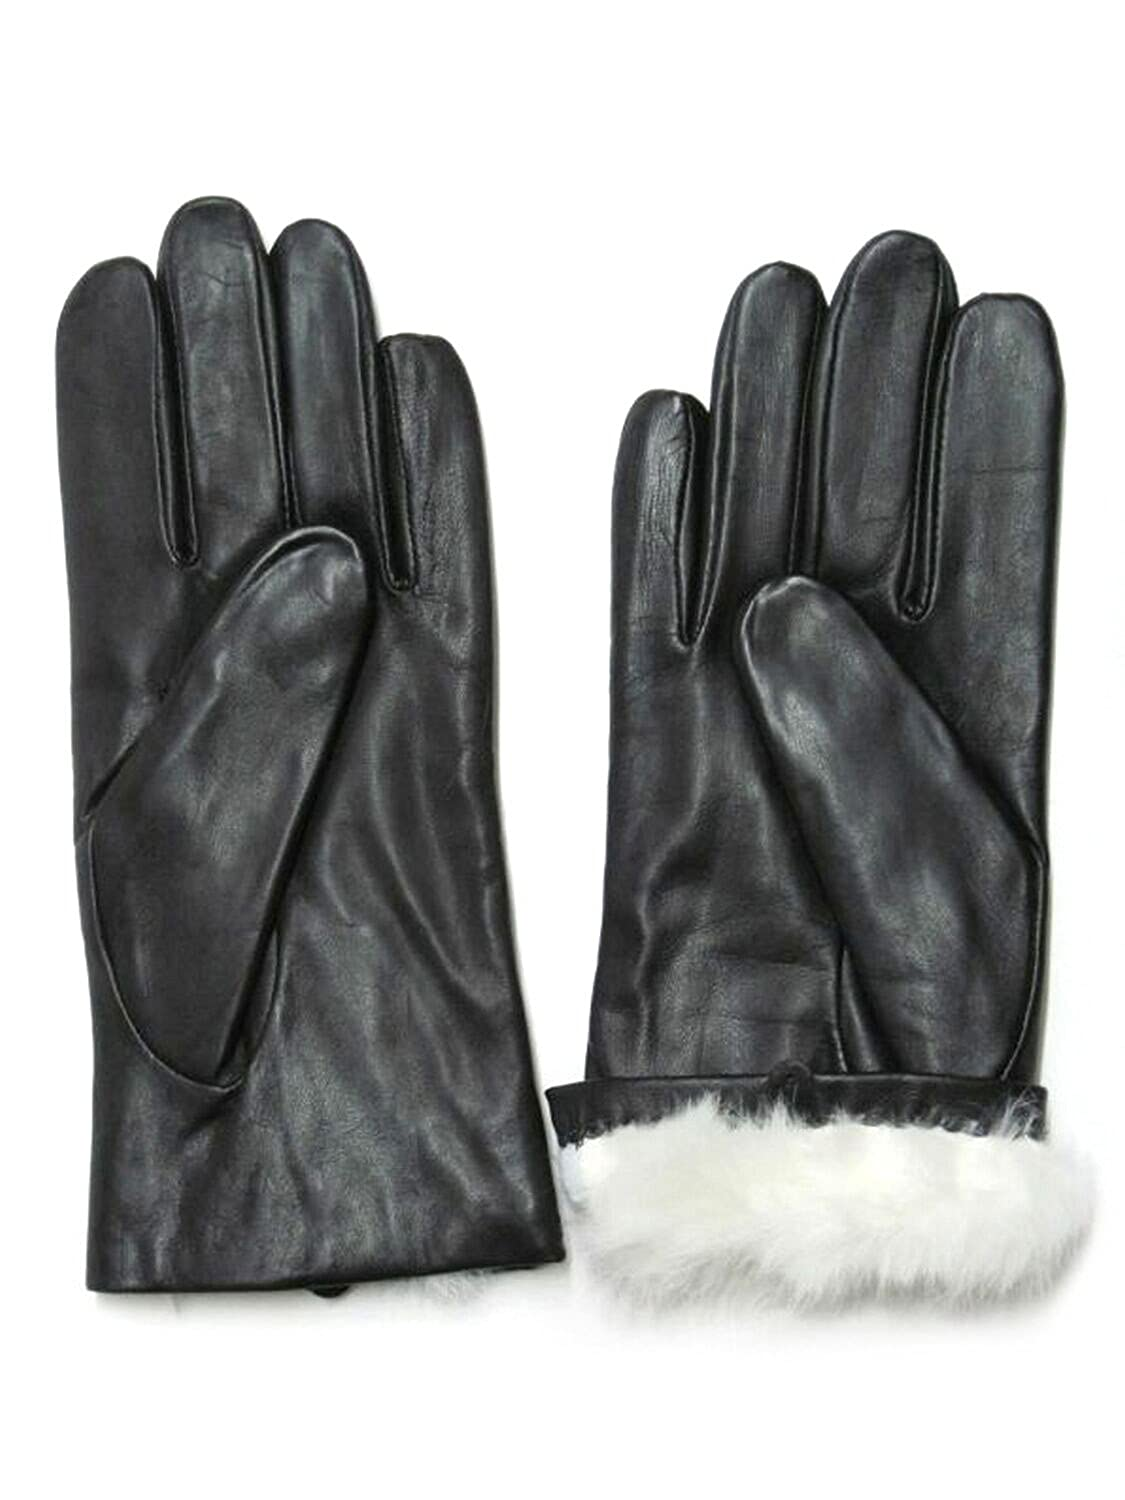 Mens leather gloves rei - Fownes Women S Rabbit Fur Lined Black Napa Leather Gloves 6 5 S At Amazon Women S Clothing Store Cold Weather Gloves